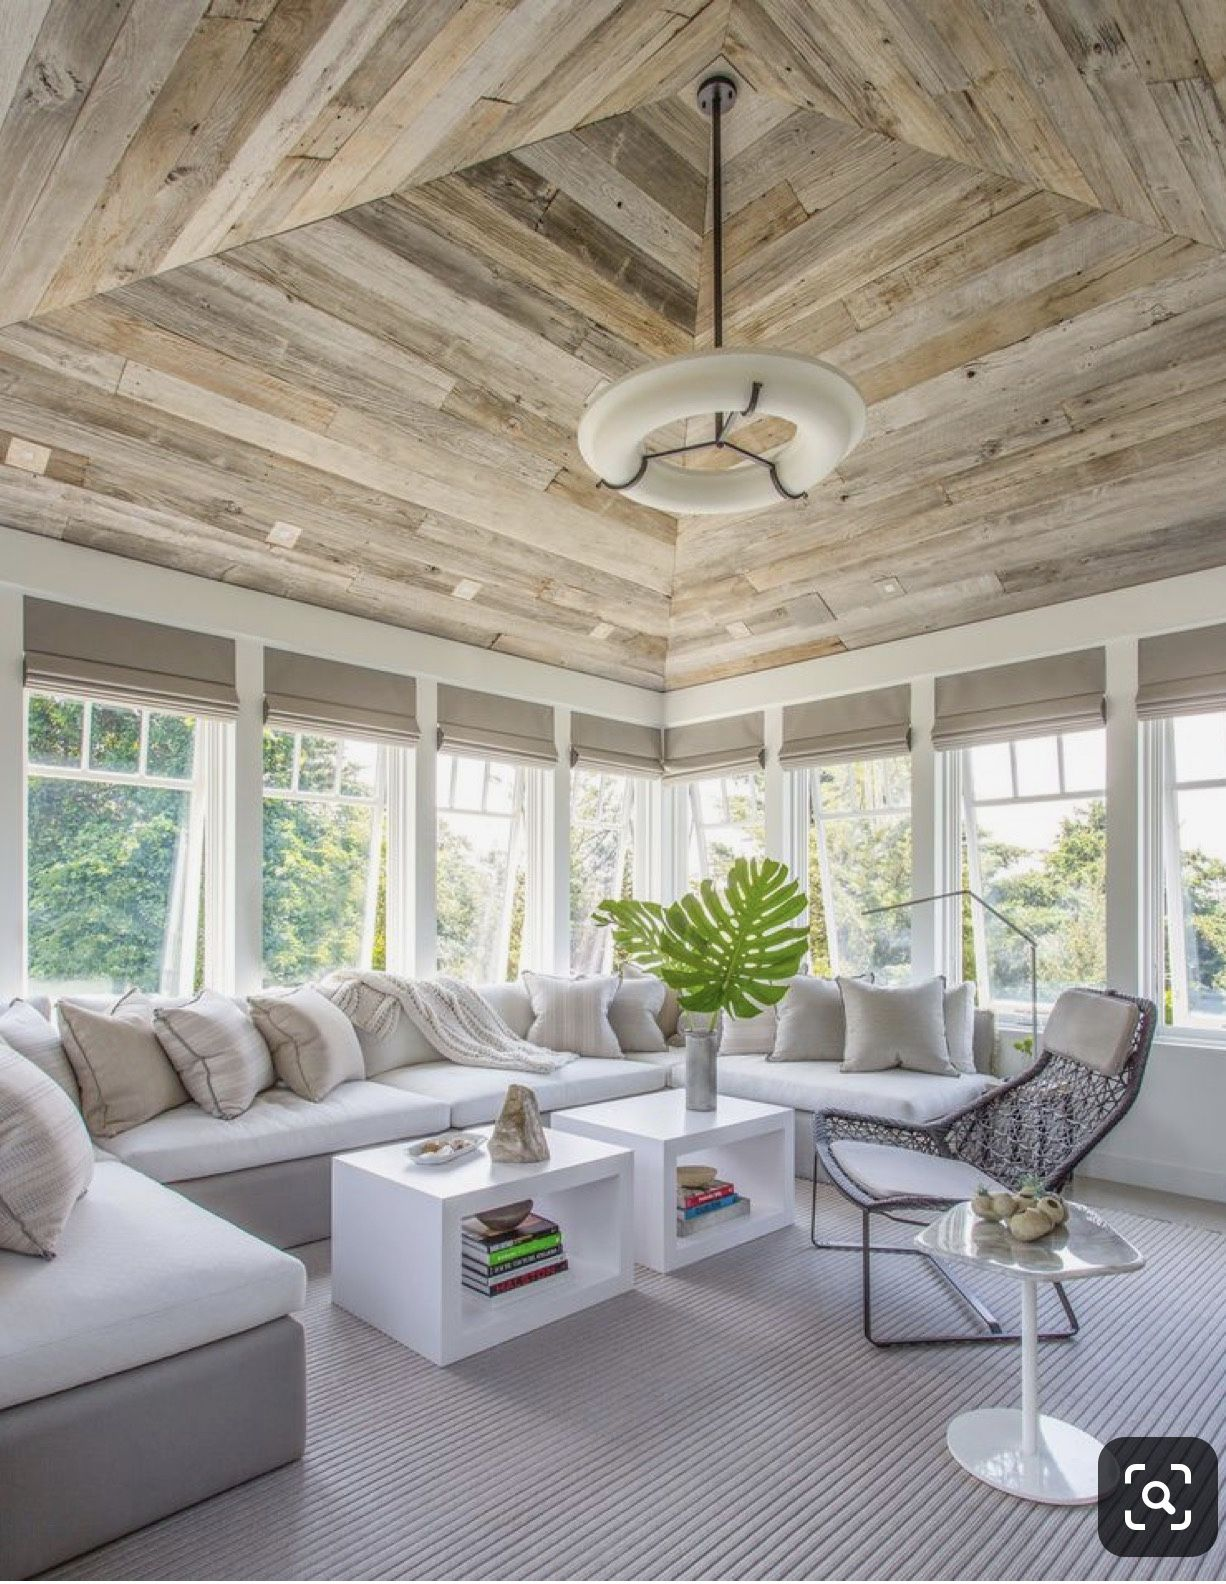 Back Porch Additions Best Ideas About Room Additions On House Additions Interior Designs: Modern Beach House Decor, Beach House Decor Bedroom, Beach